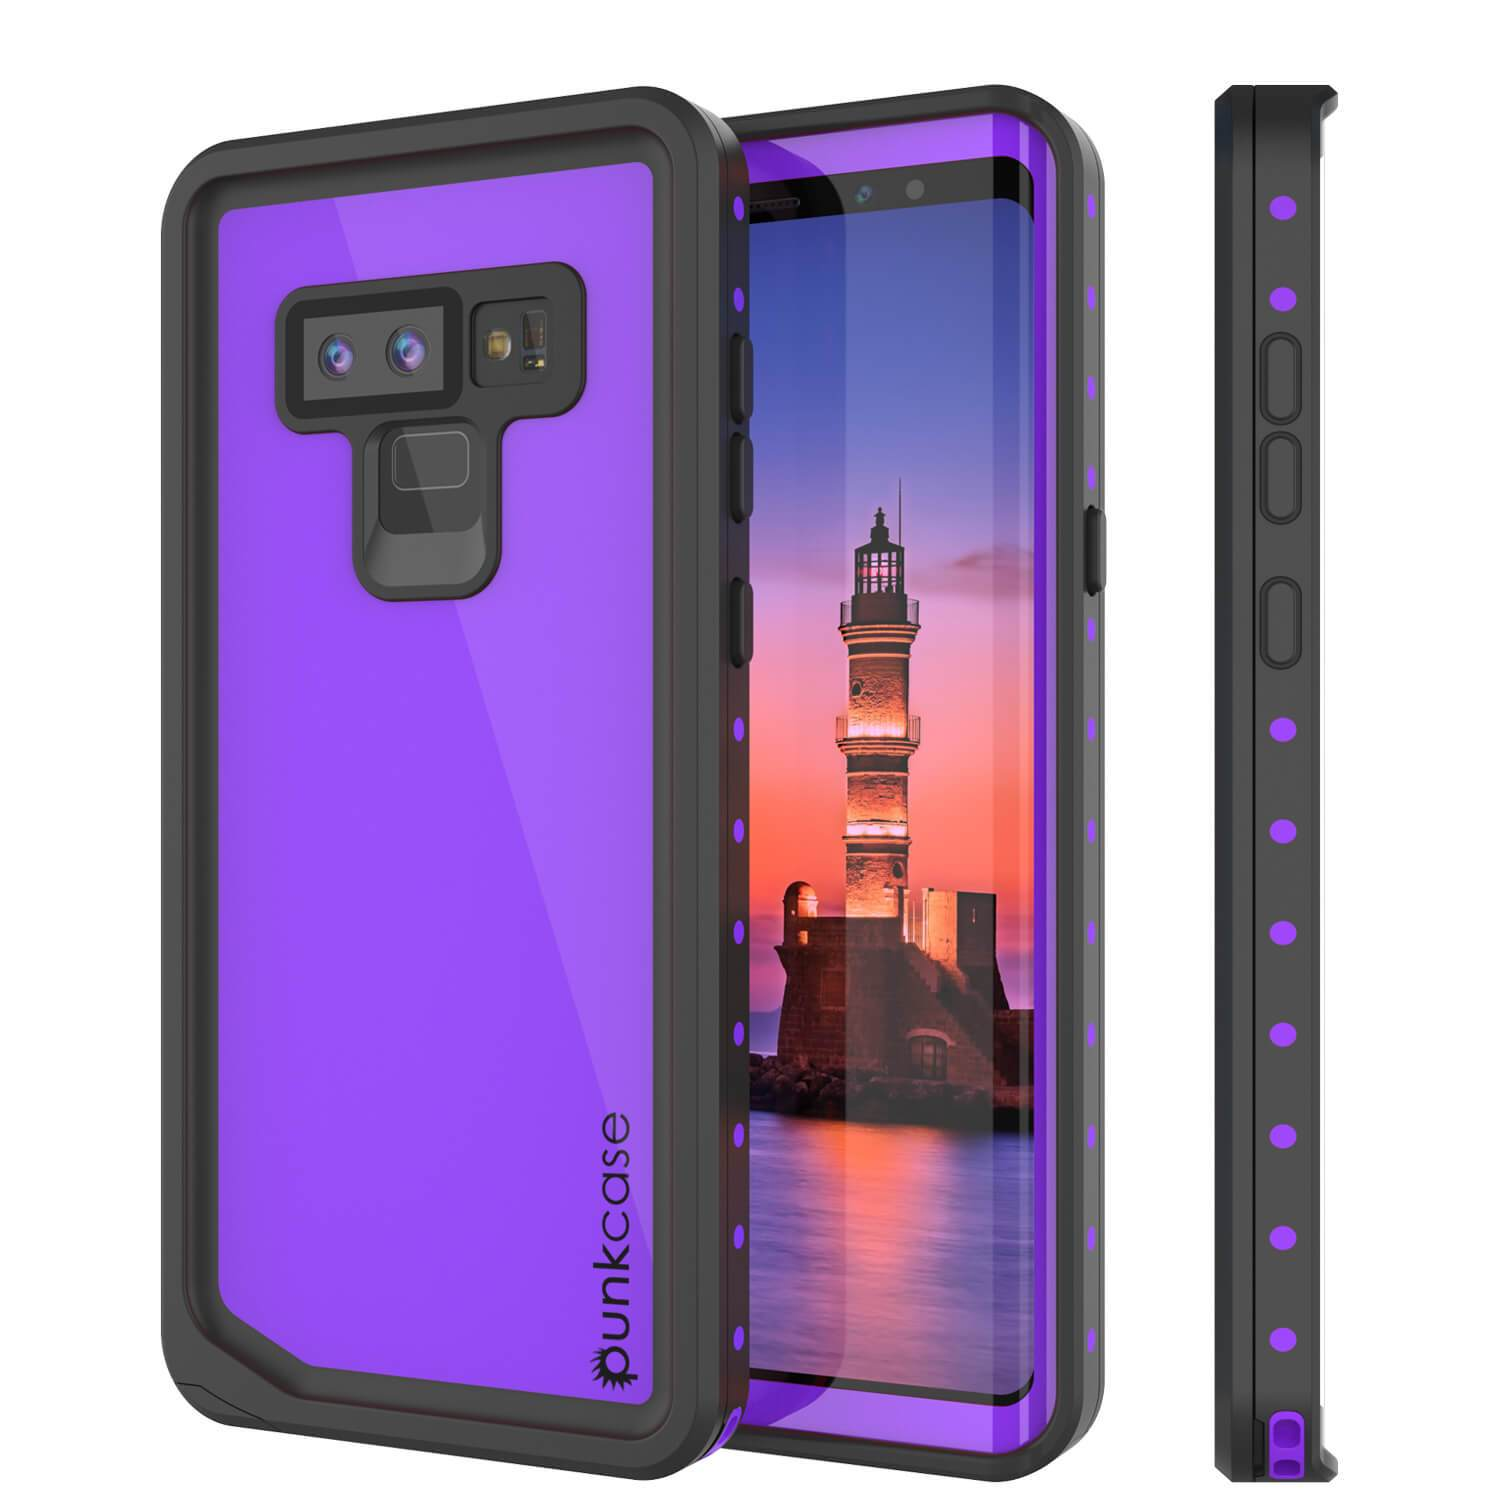 Galaxy Note 9 Waterproof Case PunkCase StudStar [Purple] Thin 6.6ft